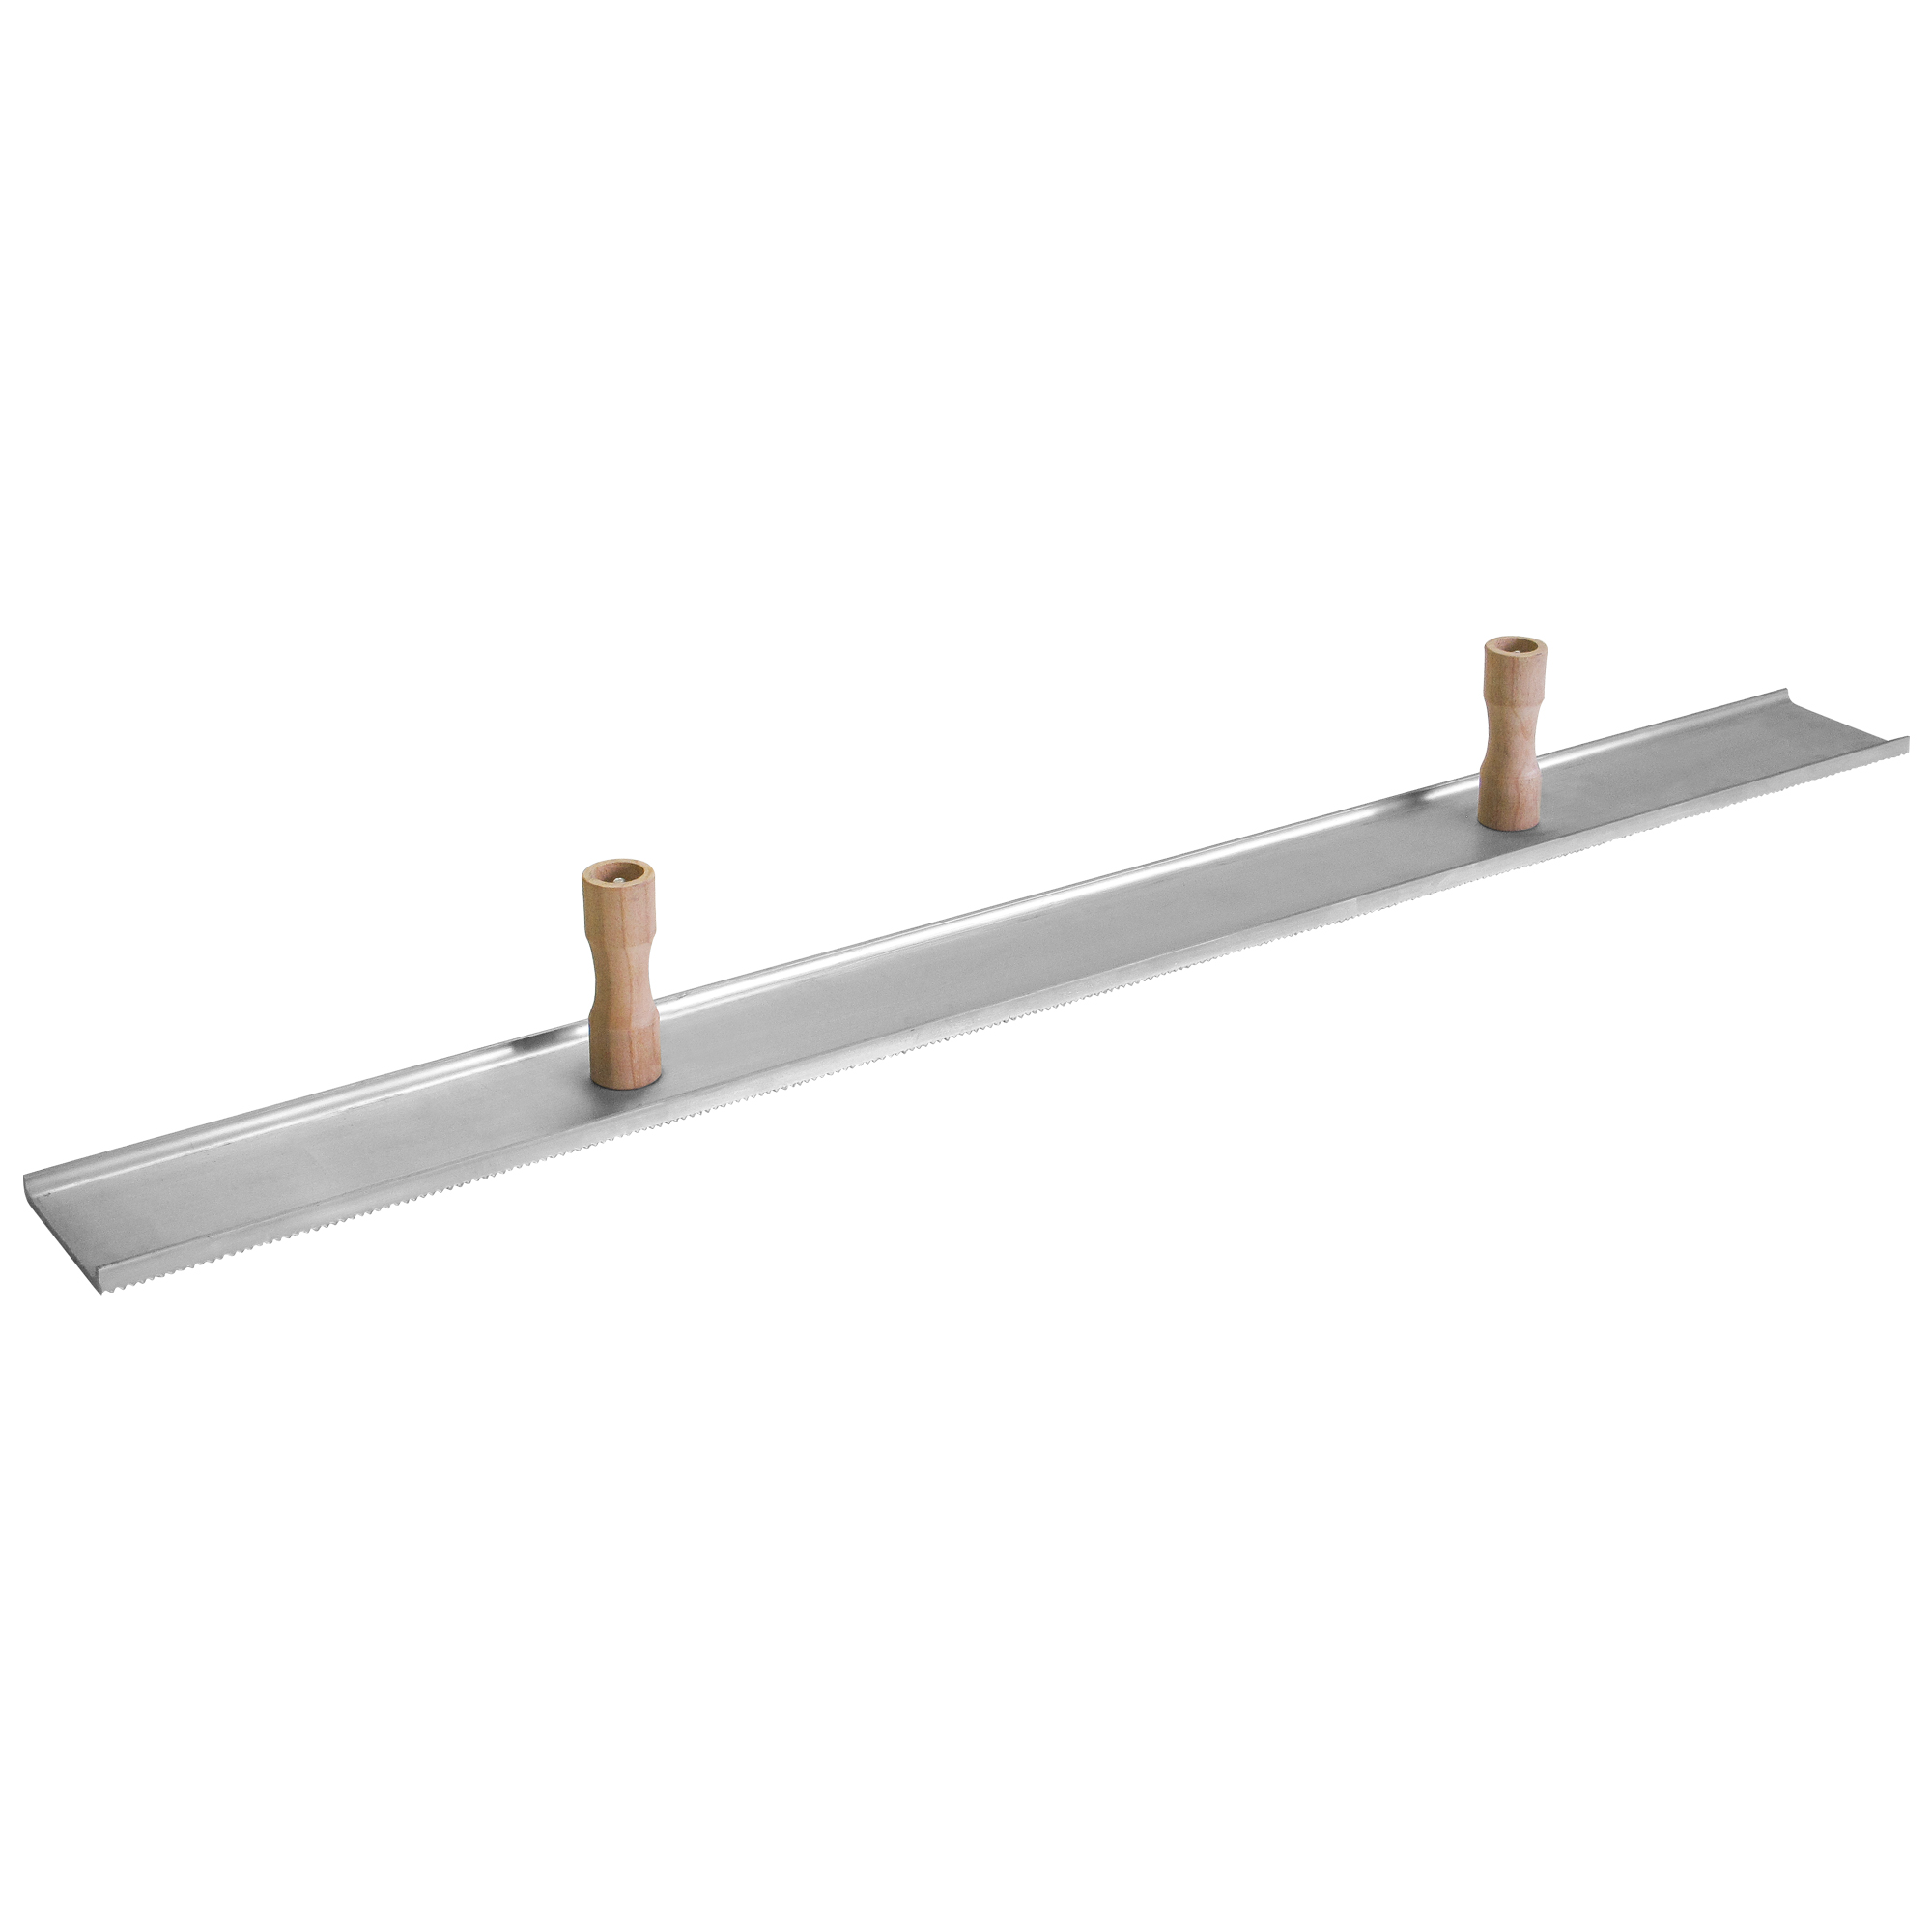 42inch Smooth Edge Magnesium Darby With 2-knob Handle - Pl410 - Measuring & Sensors Tools Drywall Plastering Darbies PL410